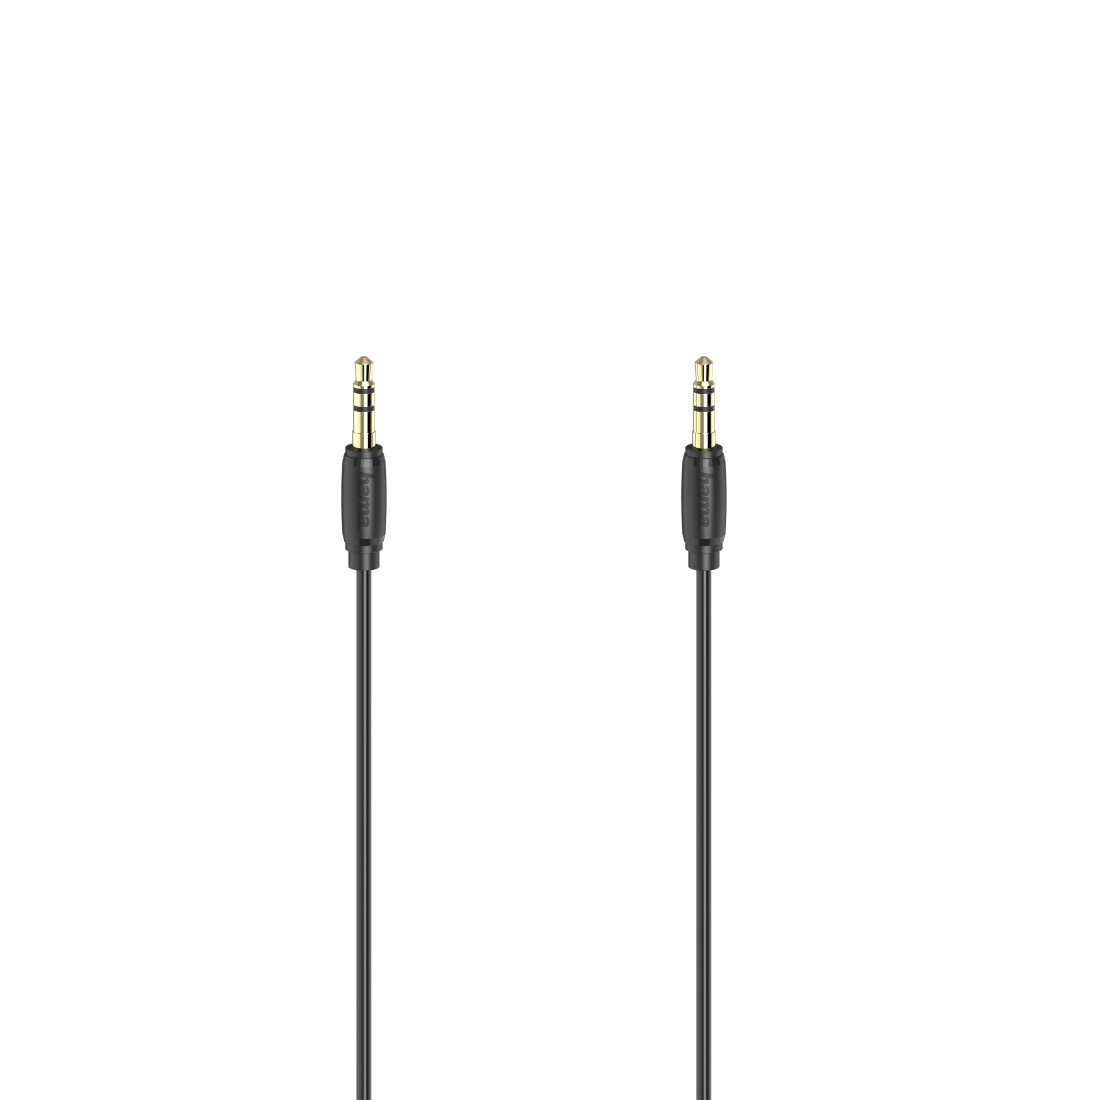 abx High-Res Image - Hama, Audio Cable, 3.5 mm Jack Plug - Plug, Stereo, Gold-Plated, Ultra-thin, 5.0 m